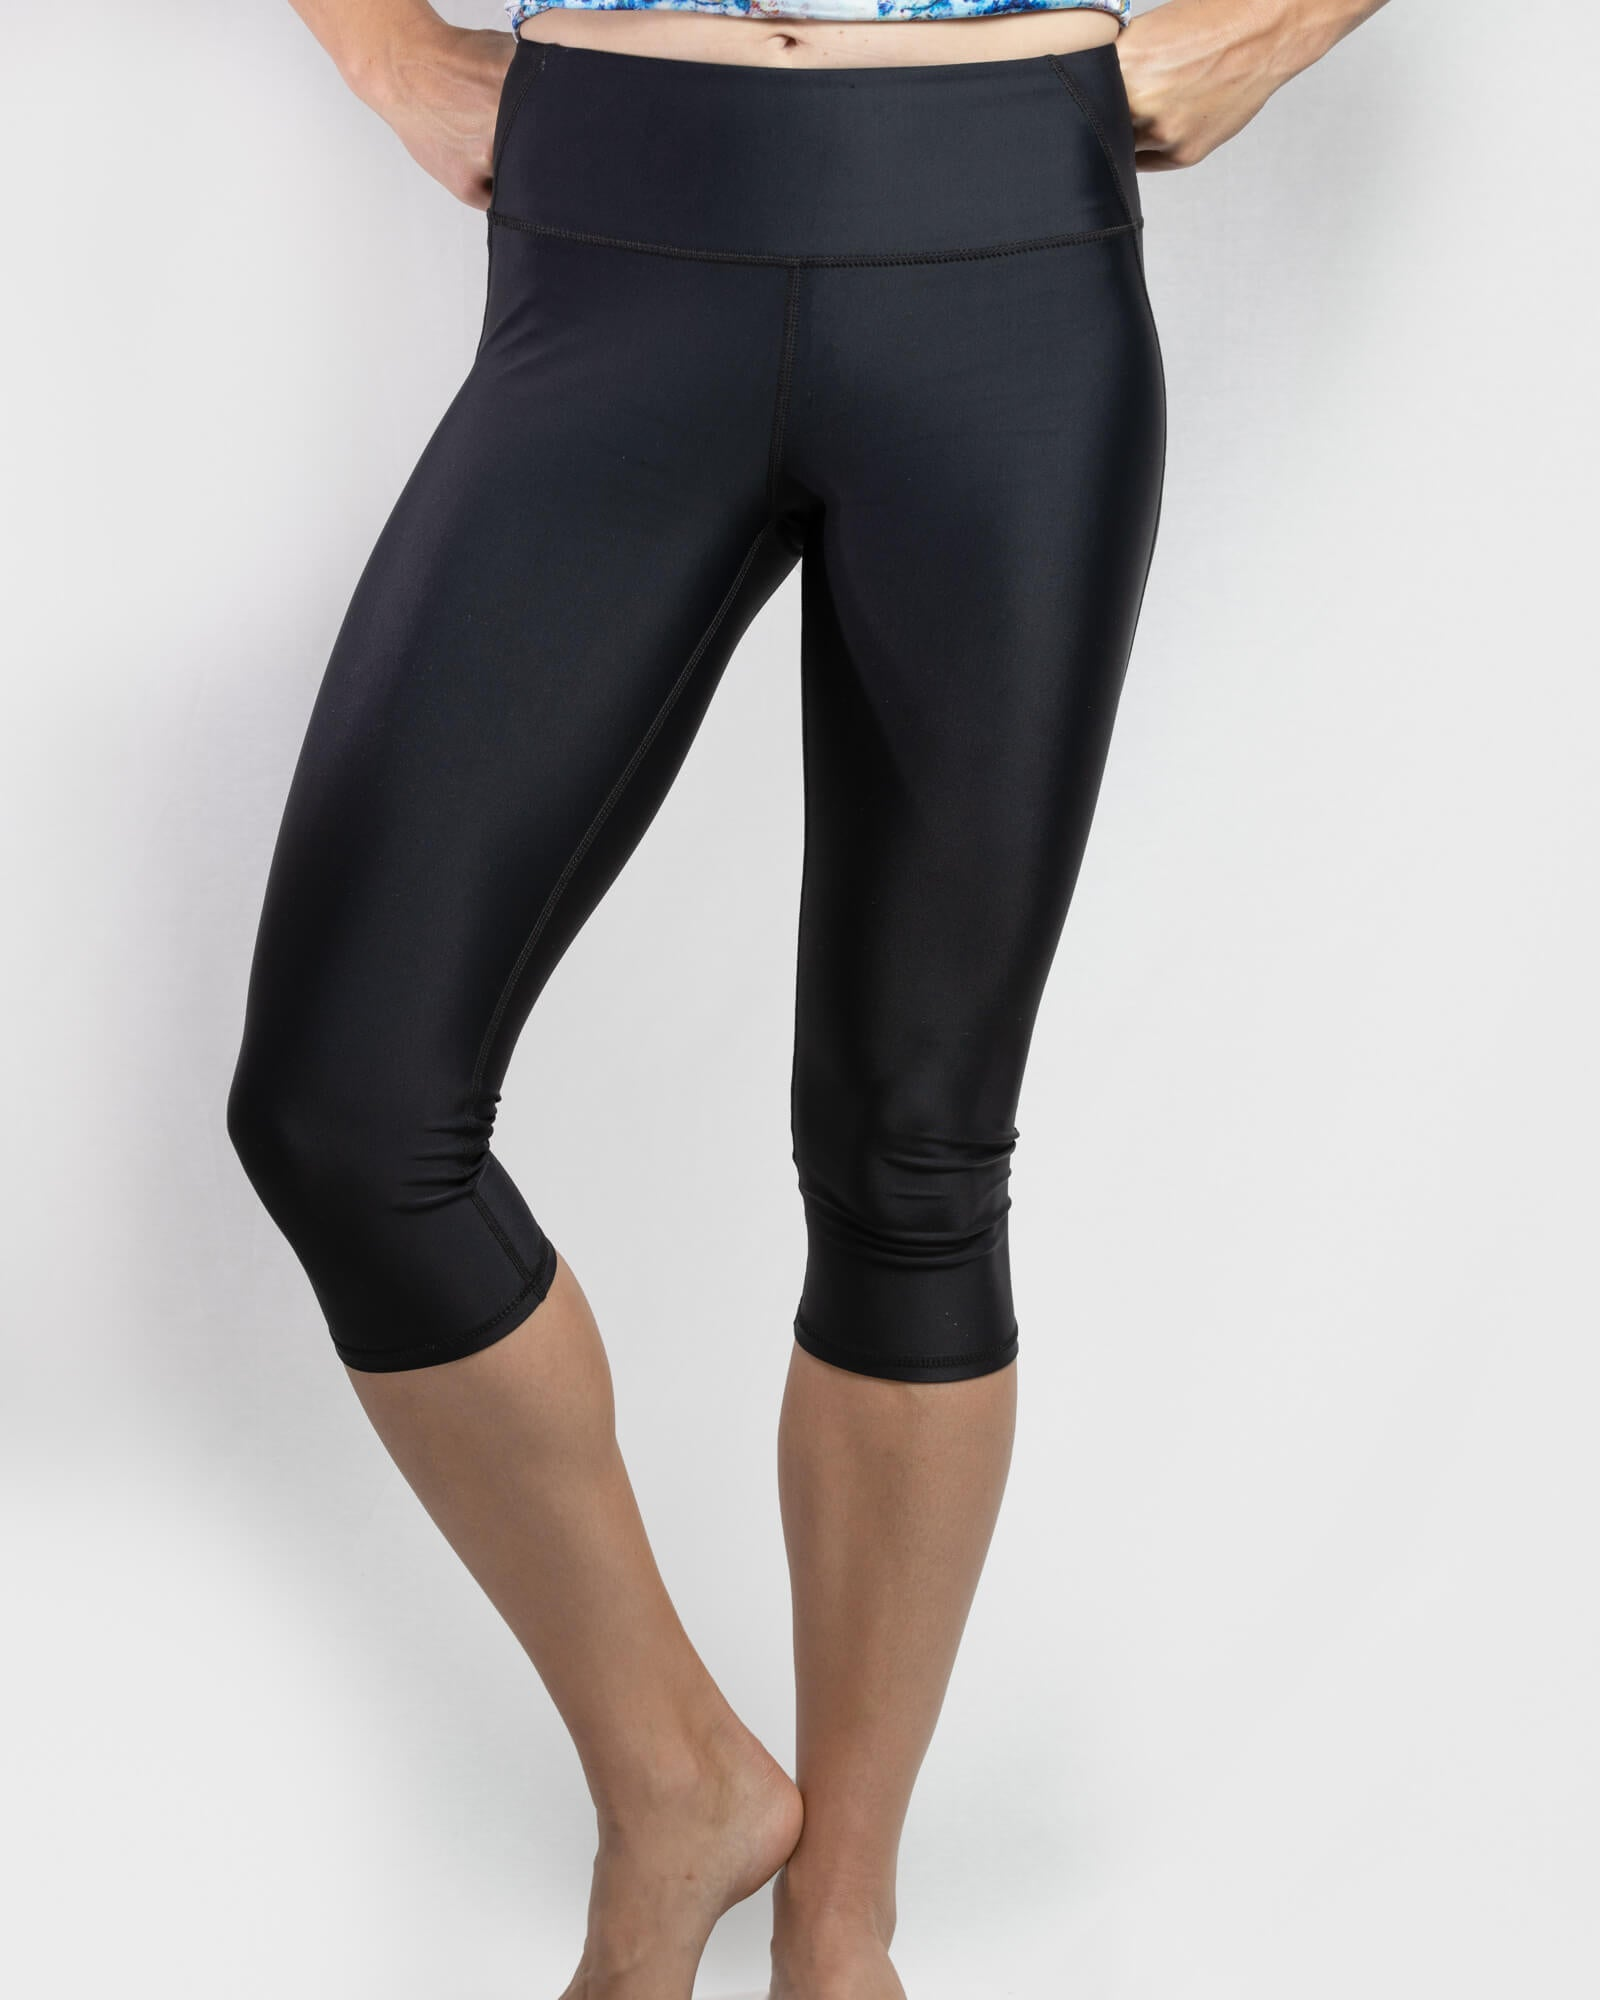 Postpartum Support Tights Black 3/4 Length - mammojo lactivewear